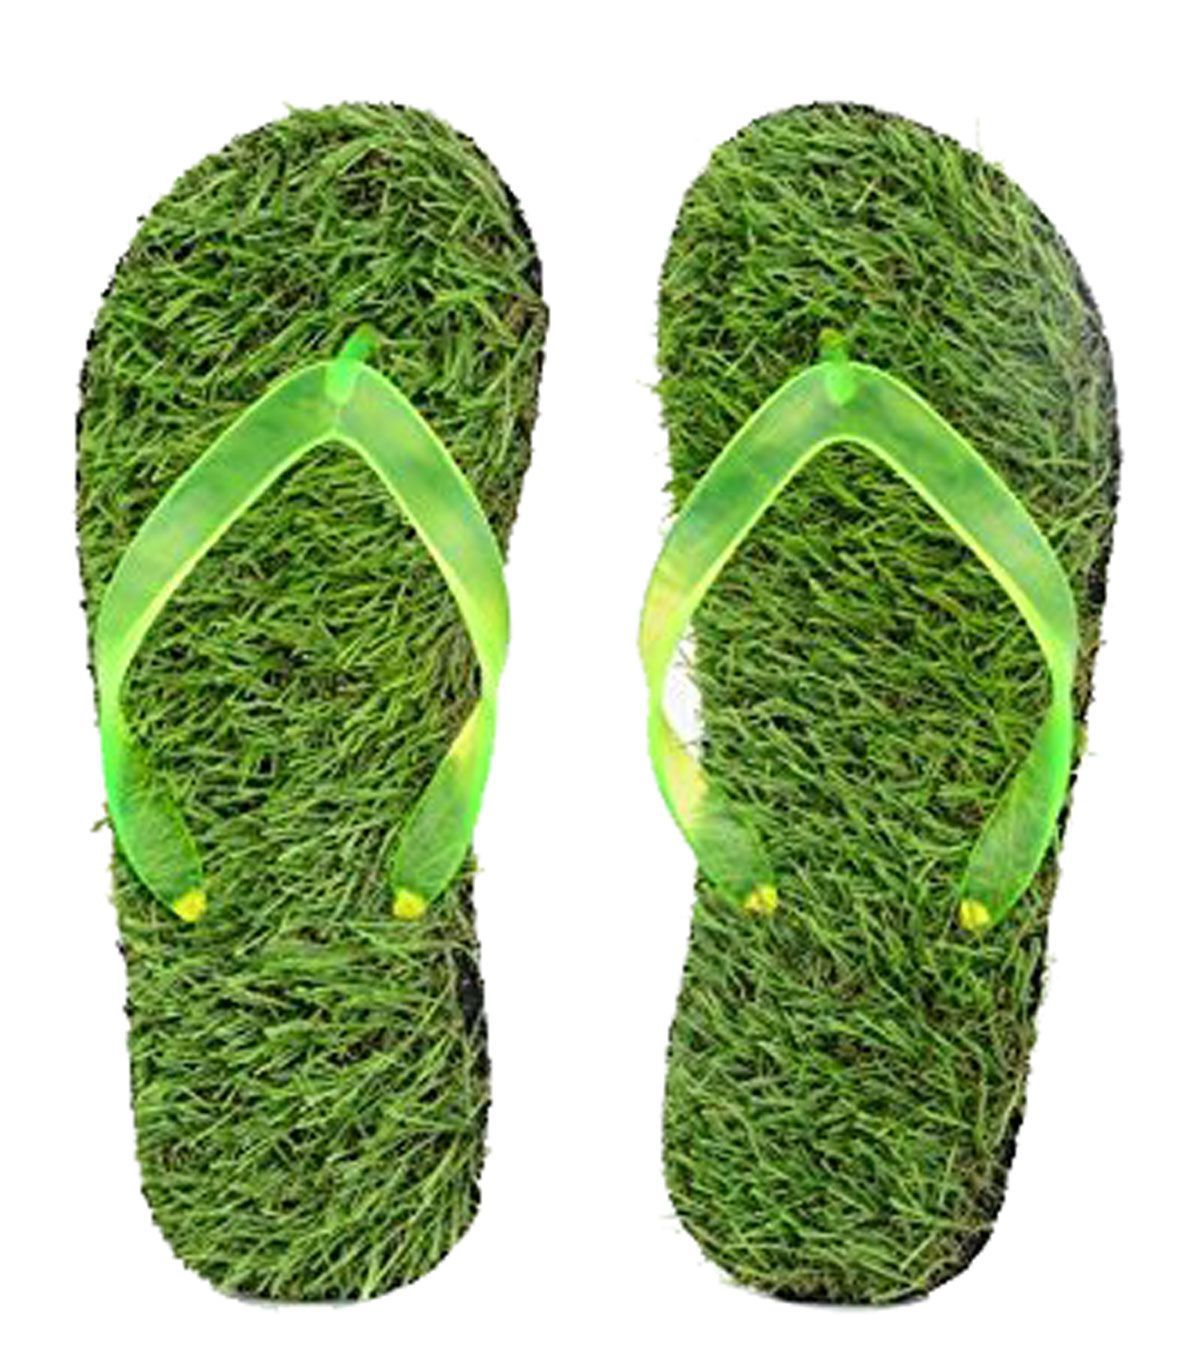 d17c3d344 ILU ILU Grass Slipper Slipper for Men Green Daily Slippers Price in India-  Buy ILU ILU Grass Slipper Slipper for Men Green Daily Slippers Online at  Snapdeal